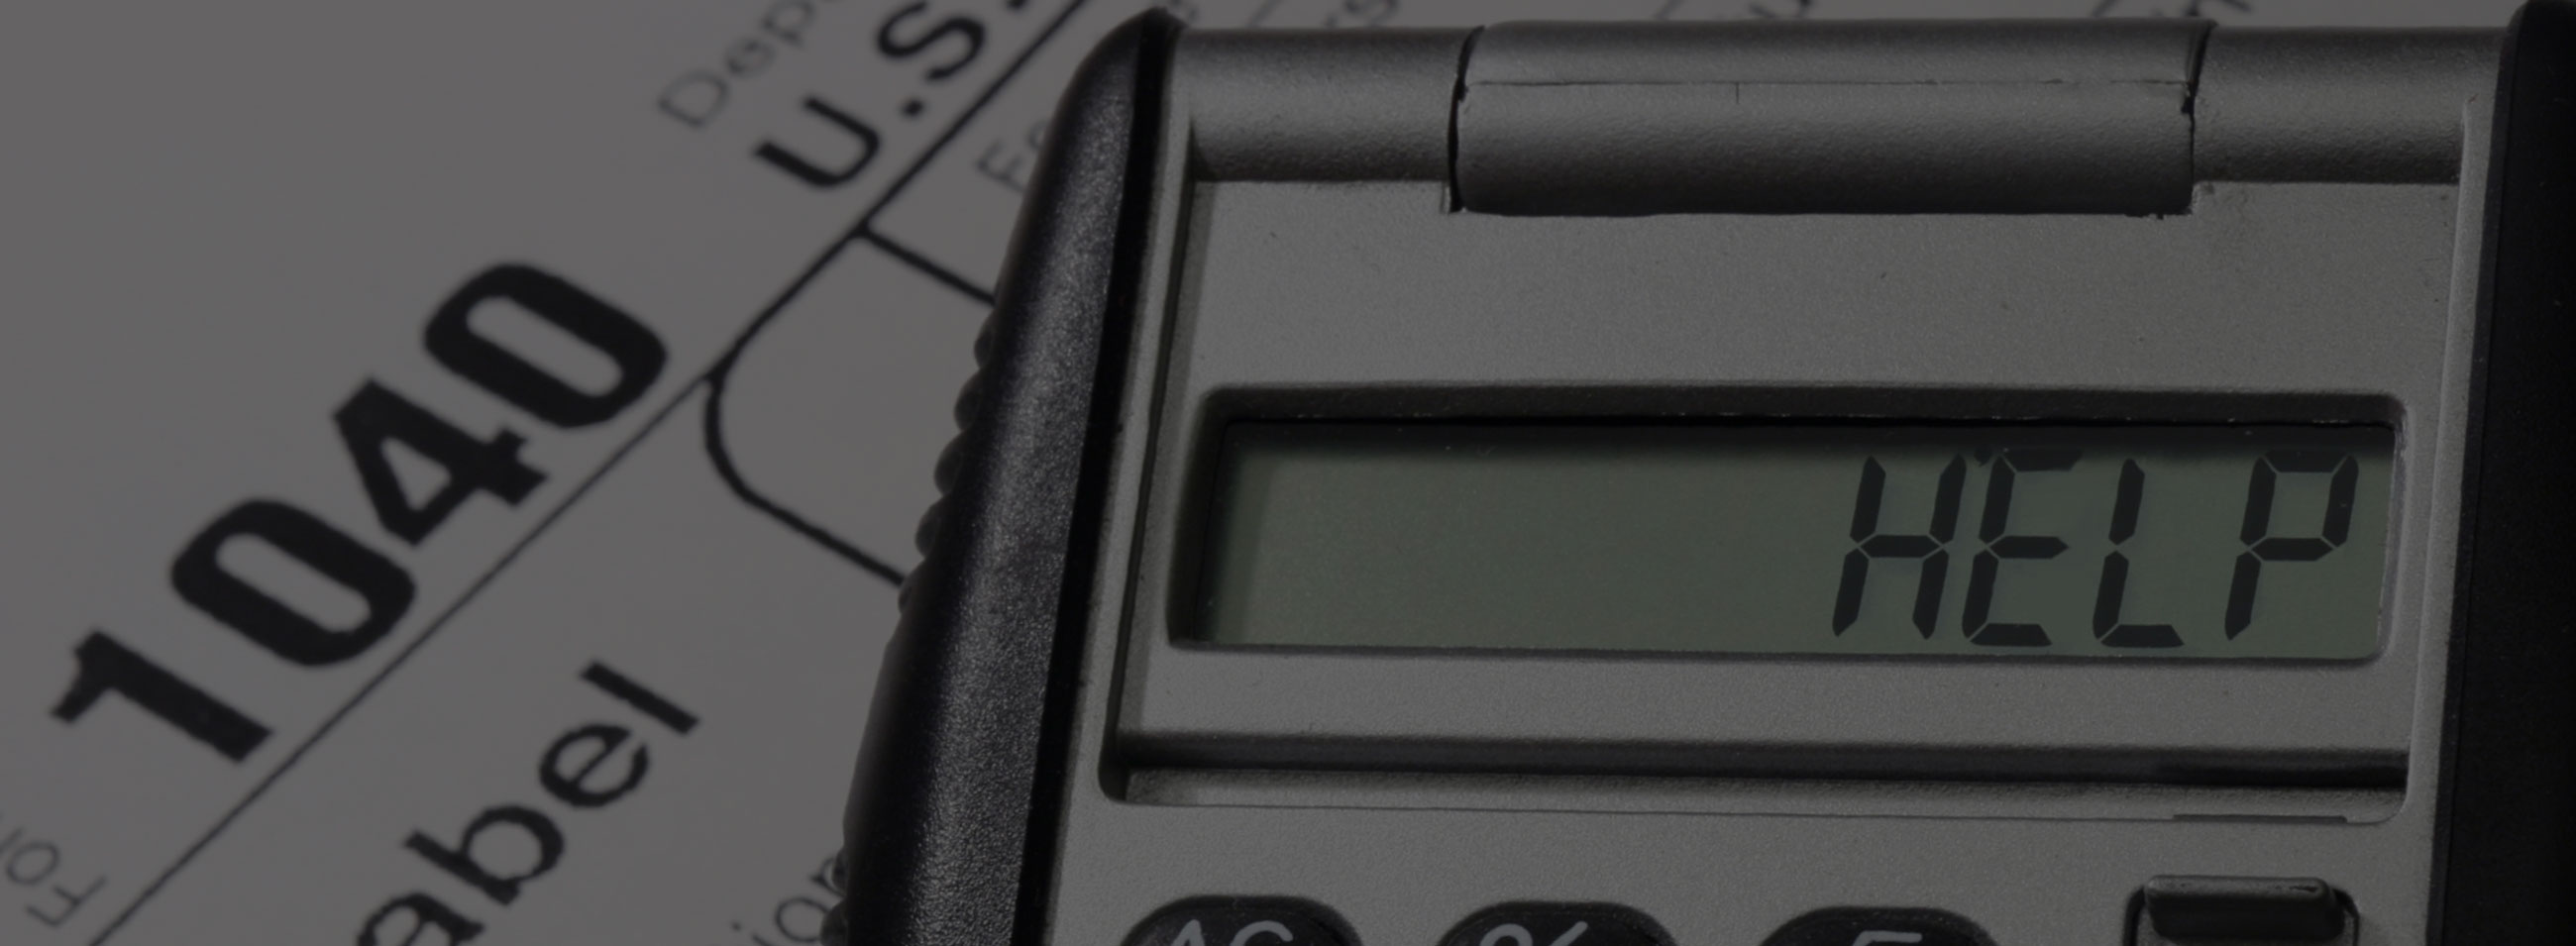 Tax Help Calculator and Paperwork - Disability Community Resource Center